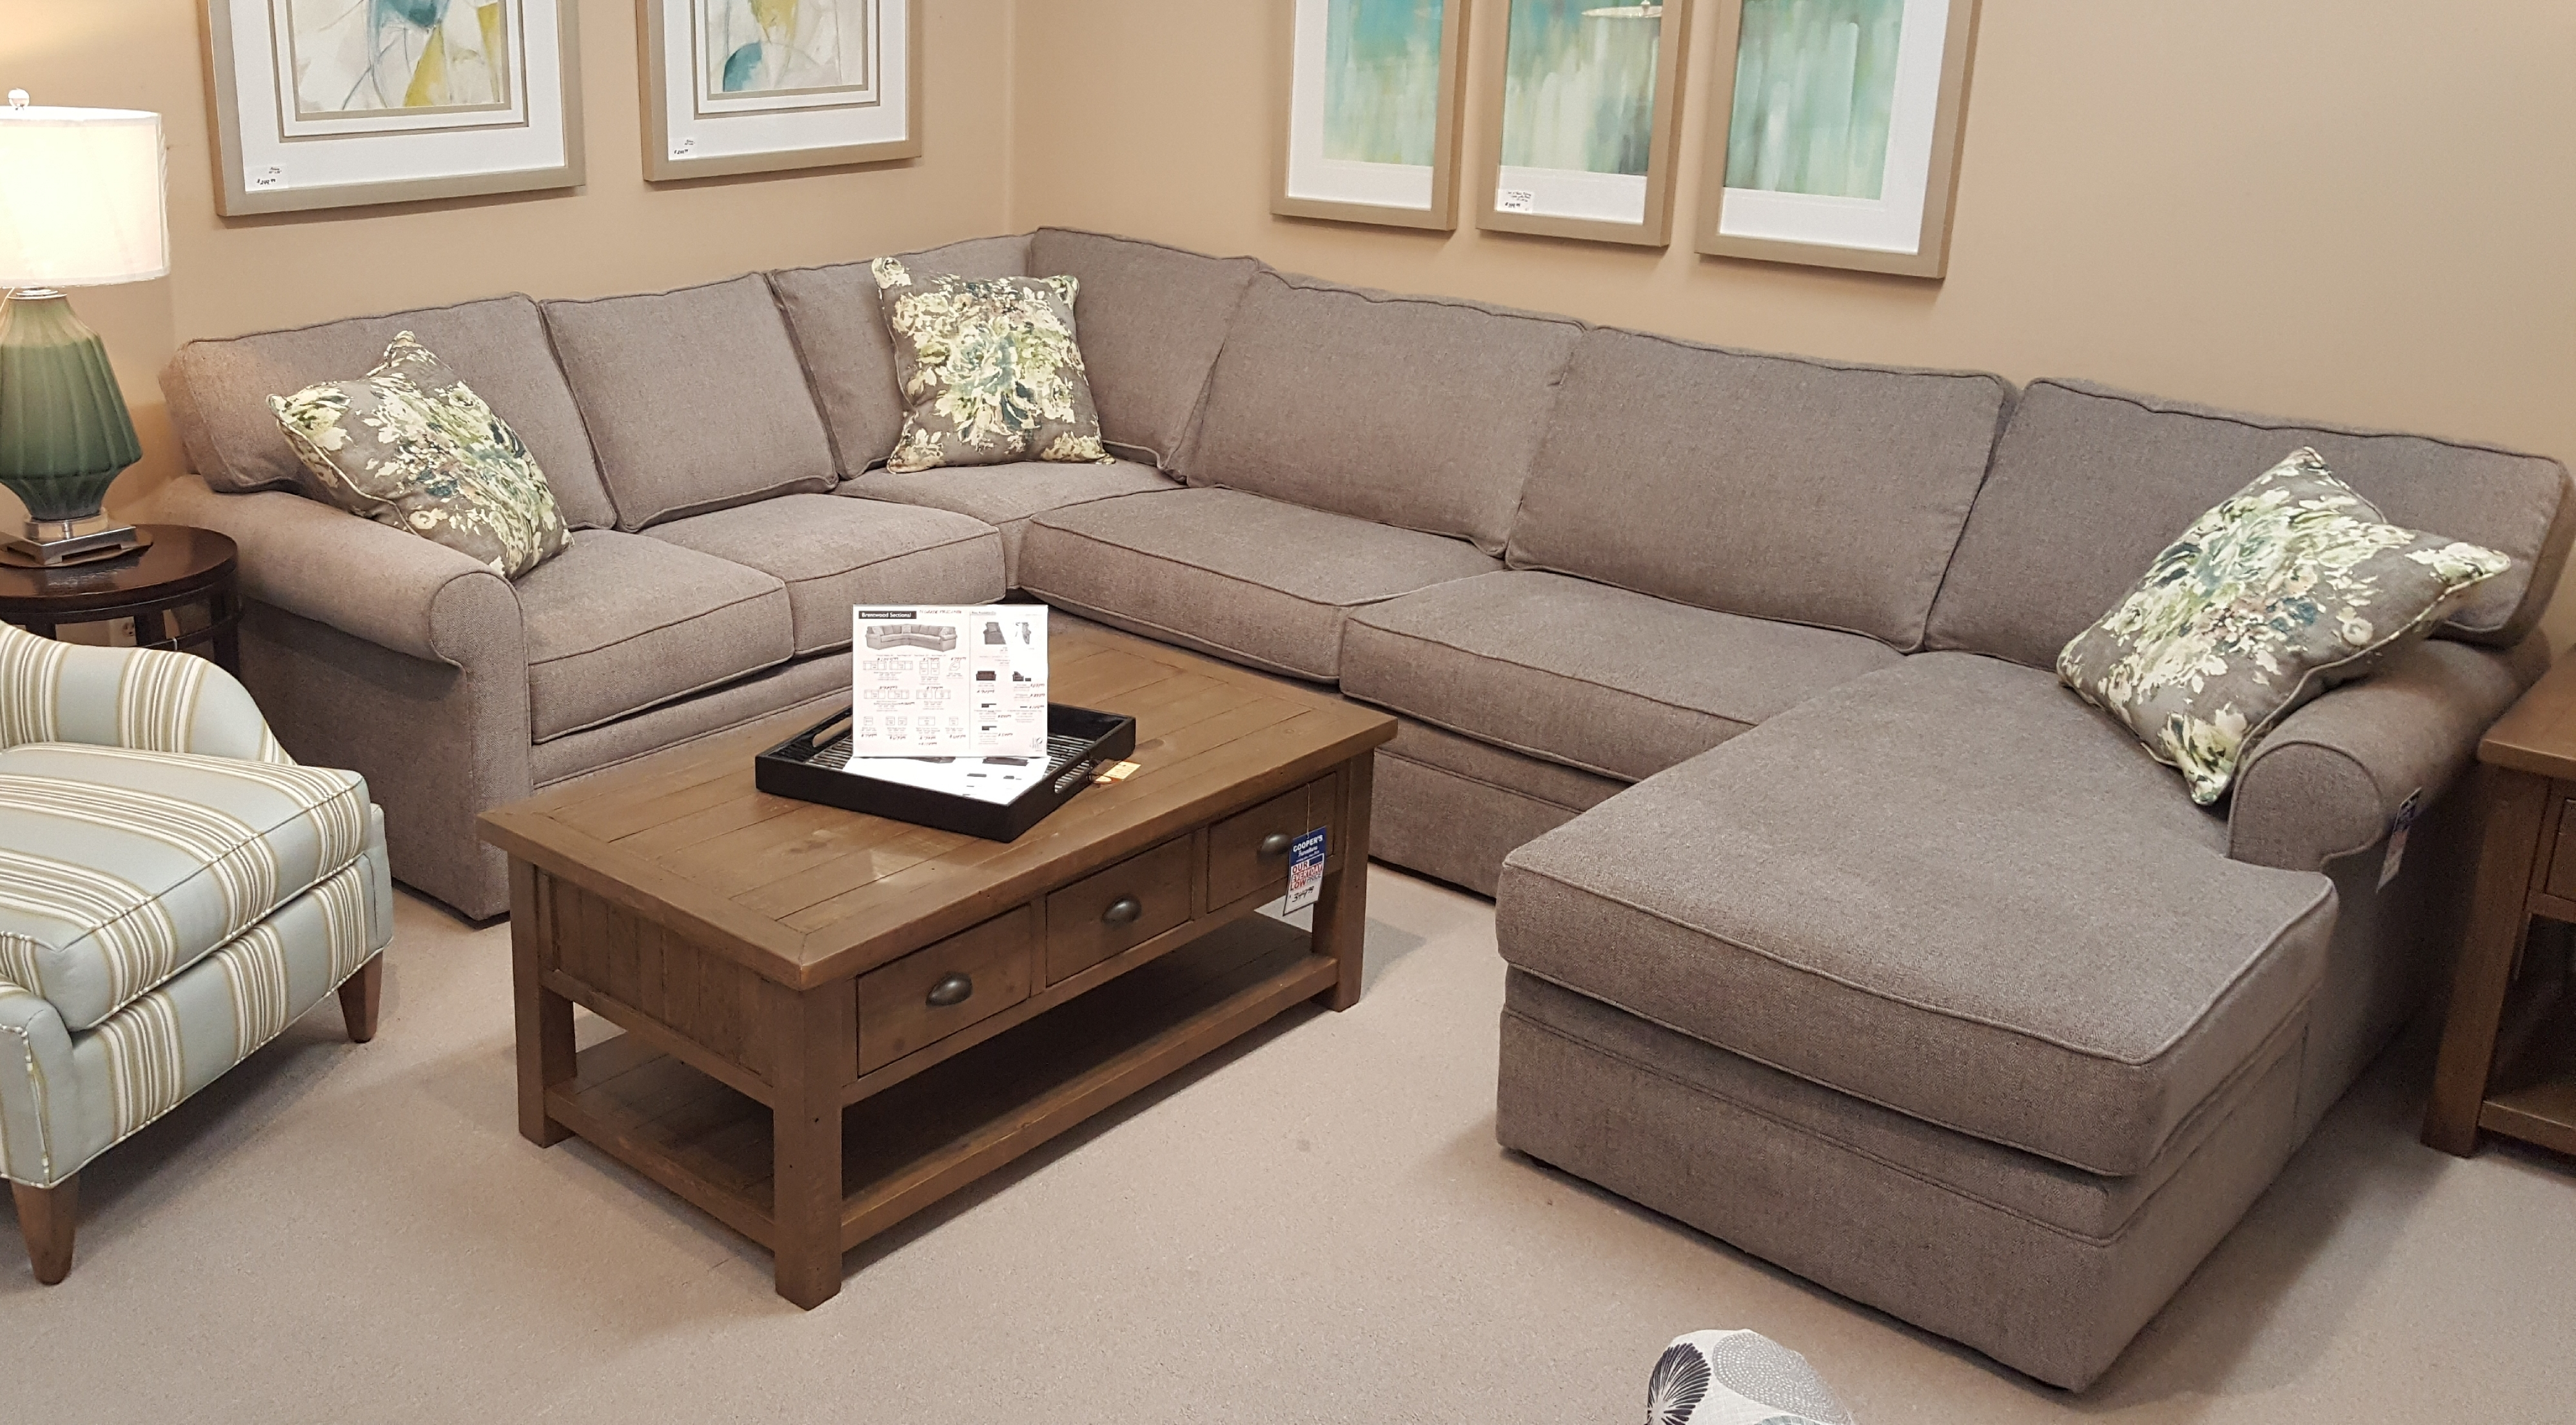 Living Room Furniture Cary Nc   Sofas, Recliners, Sectionals With Regard To Durham Region Sectional Sofas (View 6 of 10)